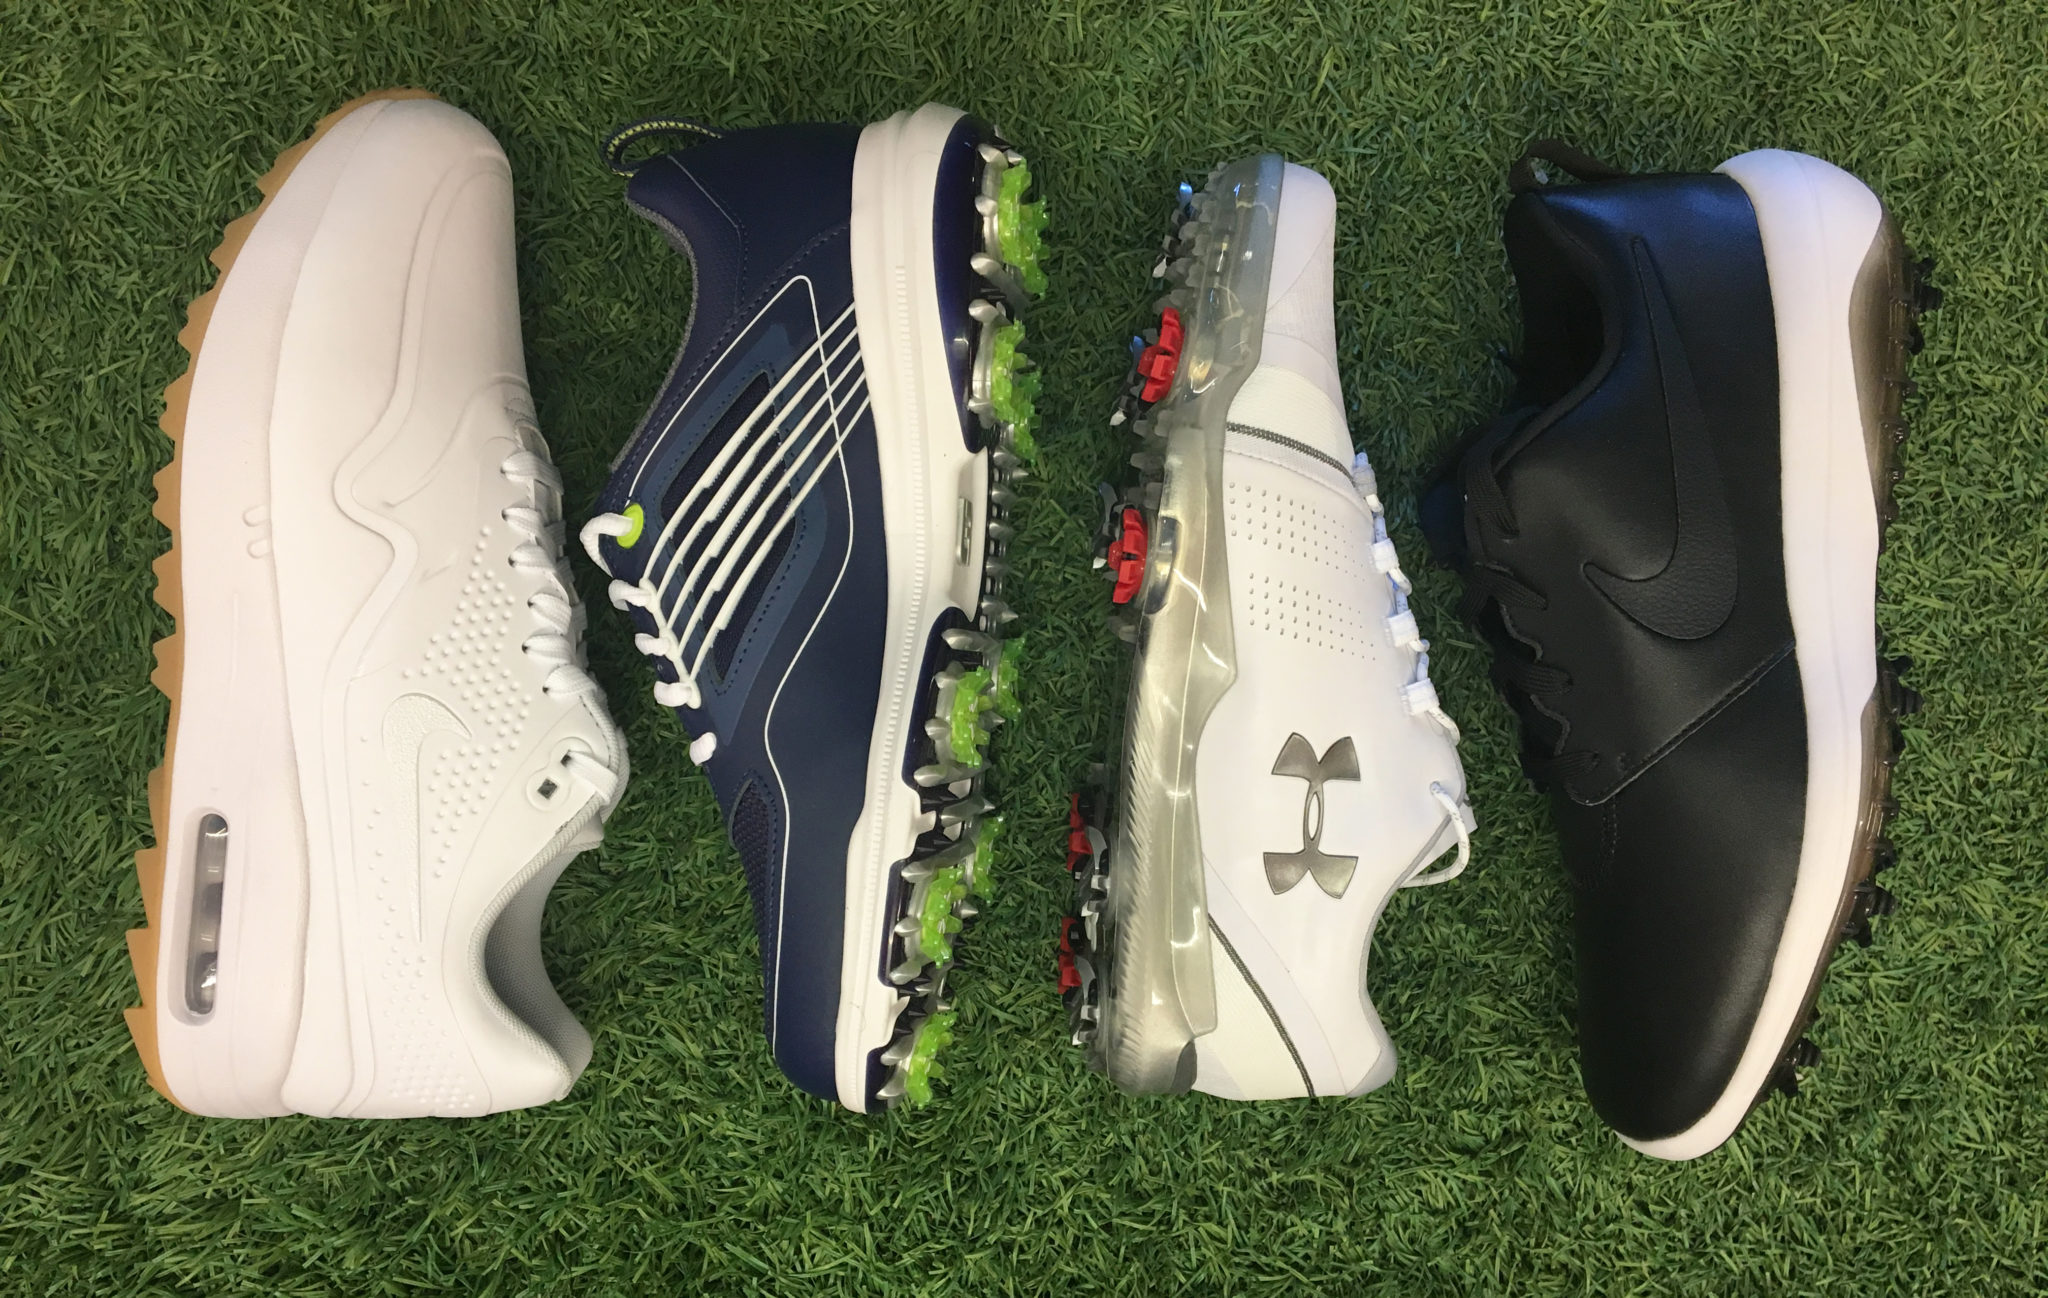 New Arrivals: Golf shoes from all of